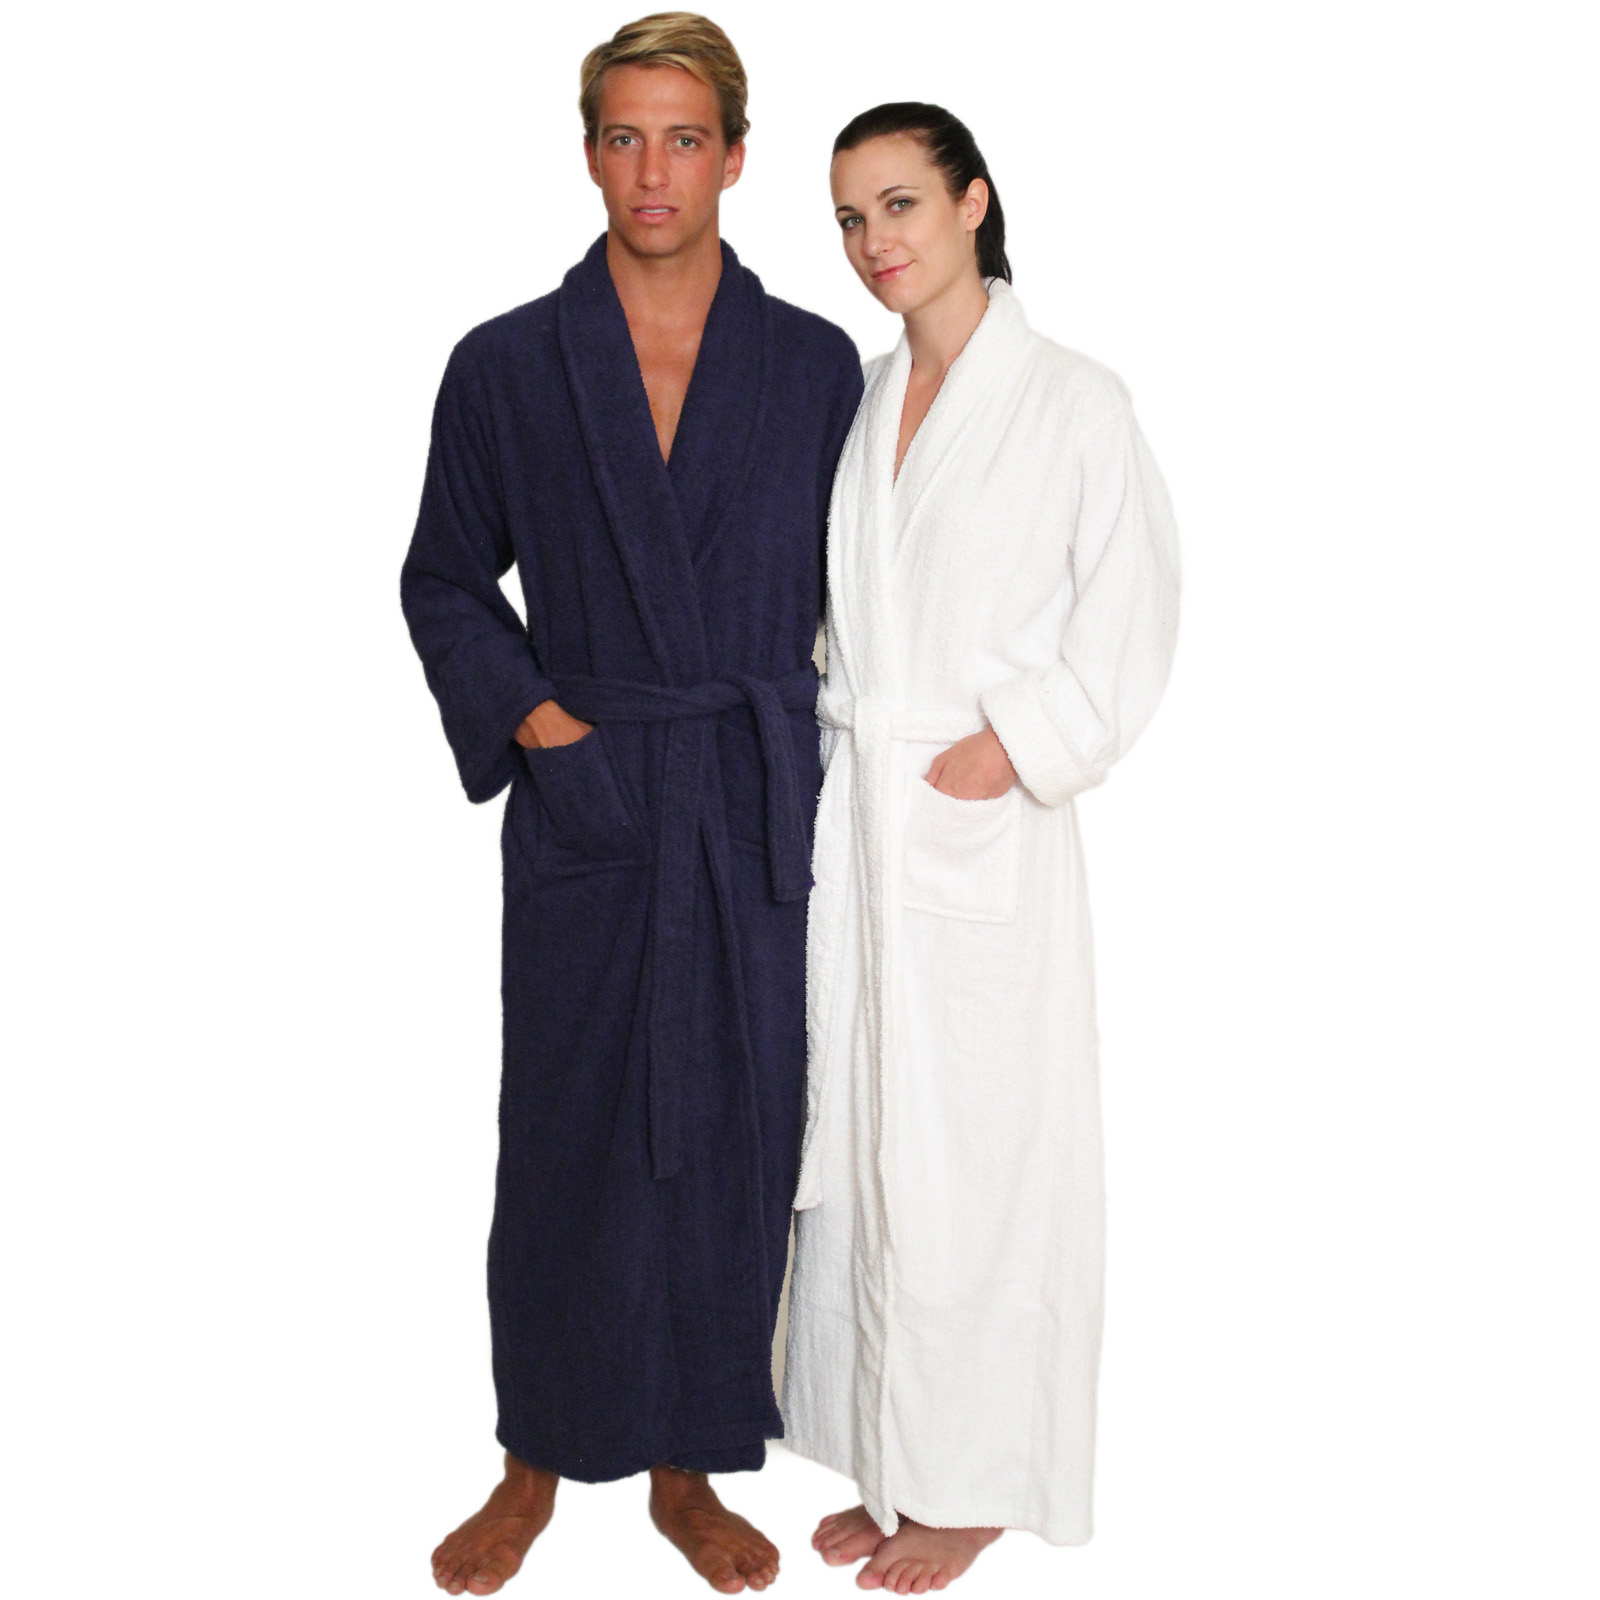 Full Length Terry Cloth Robe Long Sleeves 100% cotton $49.99 Colors: Mint-2X/3X Mint-L/XL Mint-S/M Navy-2X/3X Navy-L/XL Navy-S/M White-2X/3X White-L/XL White-S/M. Sizes:   ... Made from very fine yarn in medium weight terry cloth. This full length terry cloth robe makes ffor a